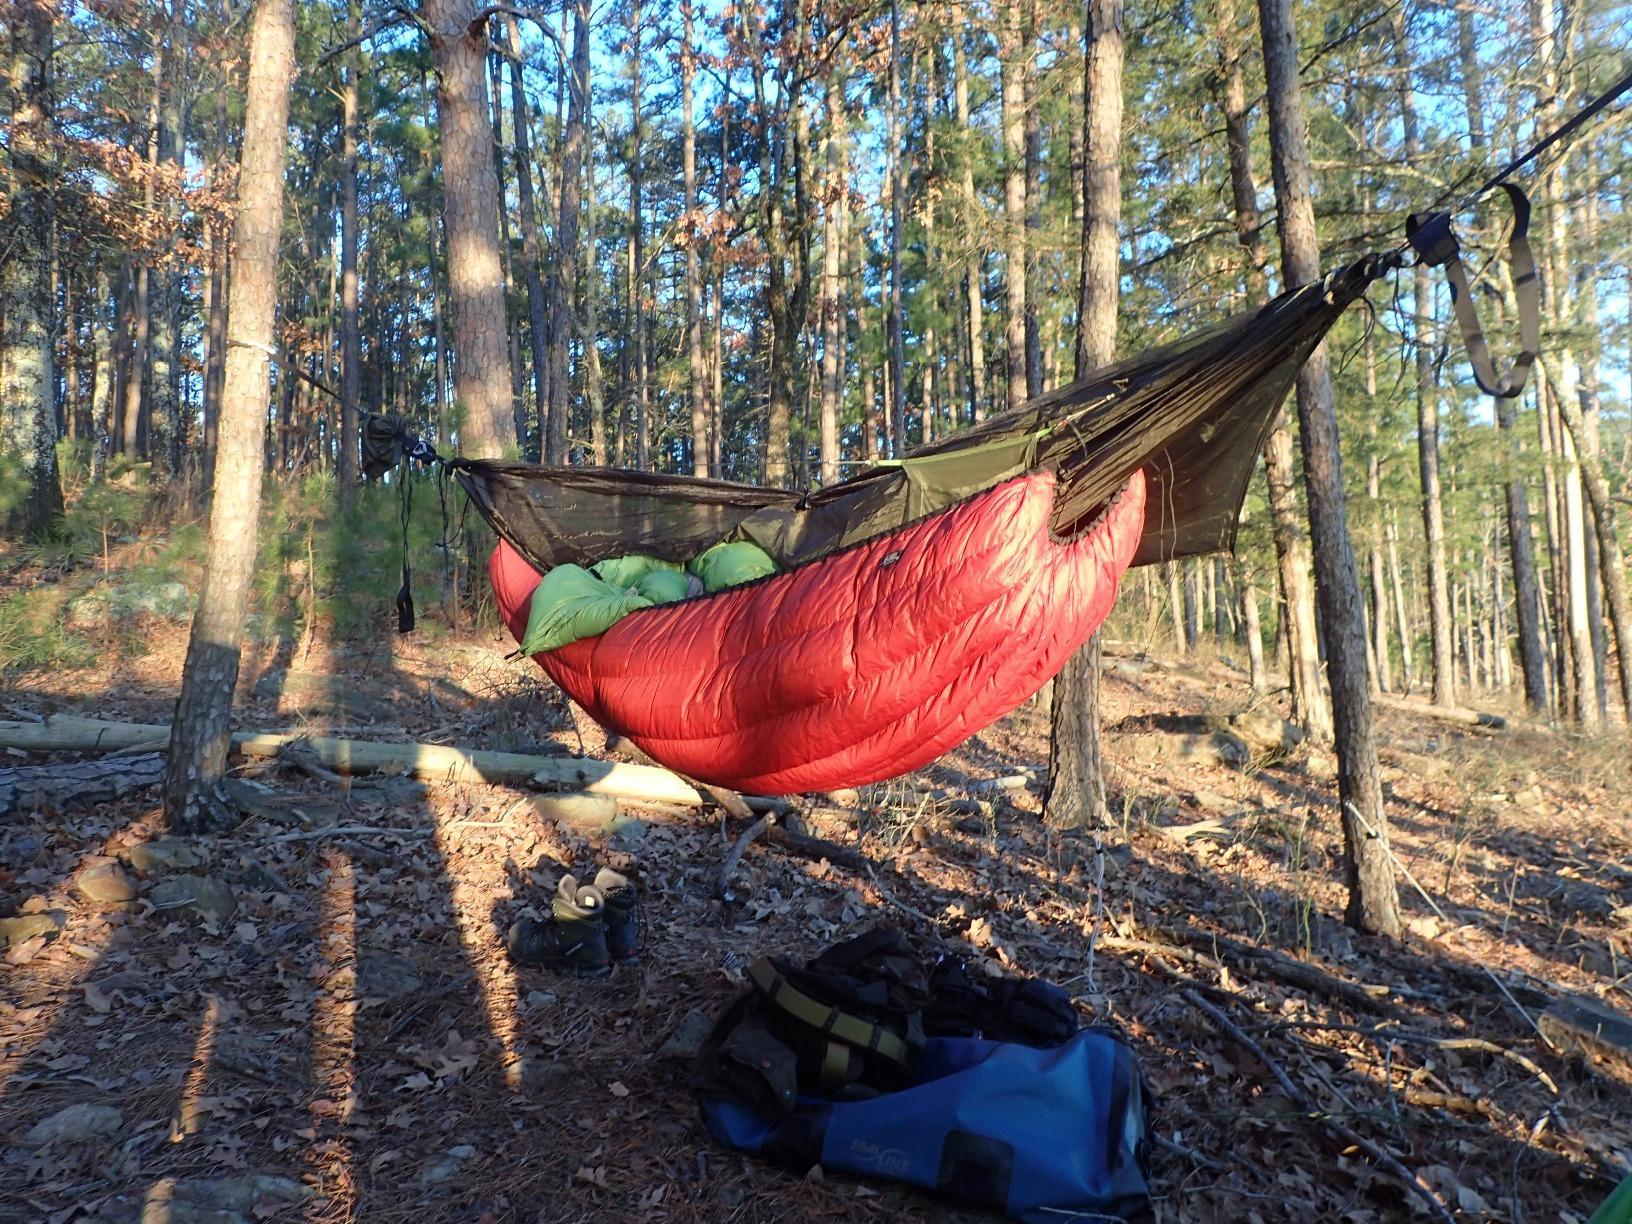 Quite a buy for the buck! Have used twice now once as an over quilt while hammock camping